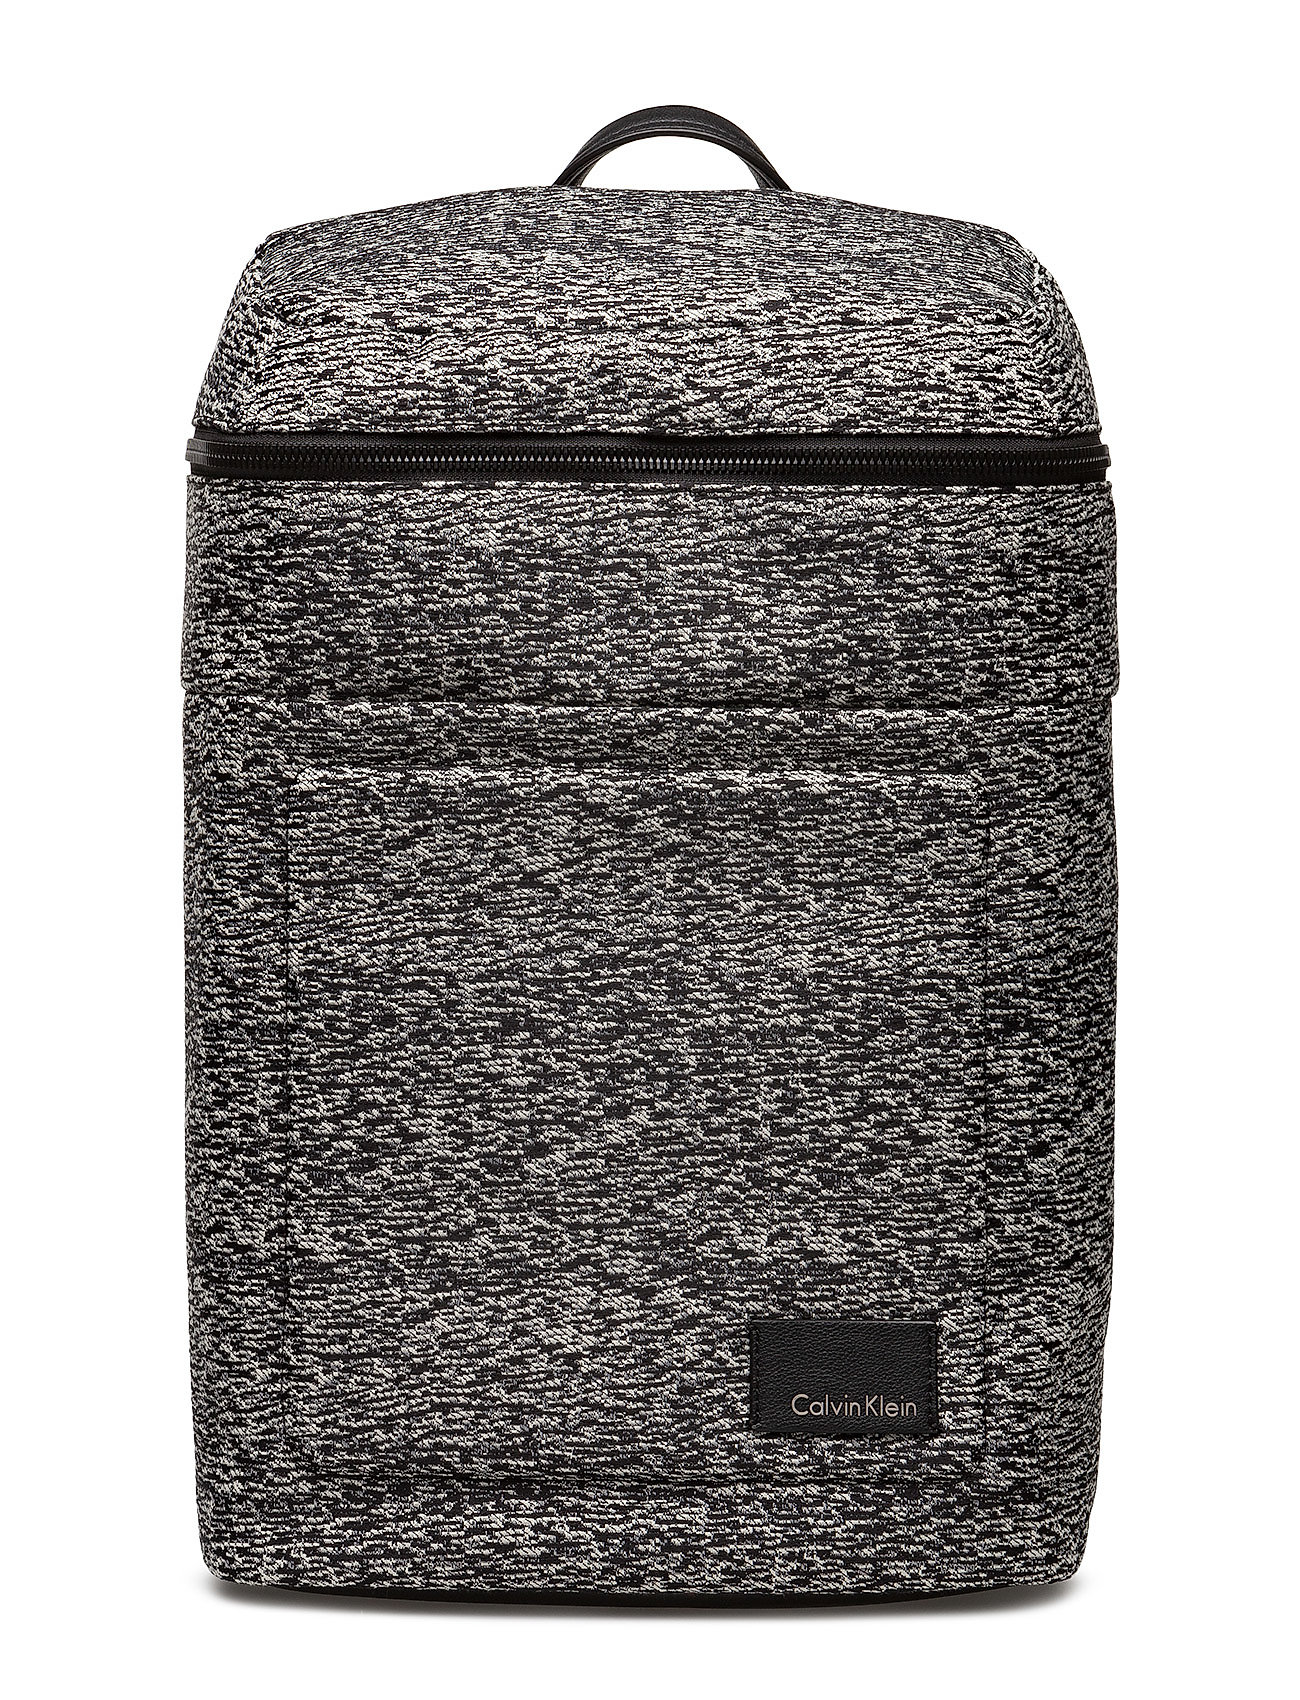 Calvin Klein ILAY JACQUARD BACKPA - BLACK/DUSTY IVORY